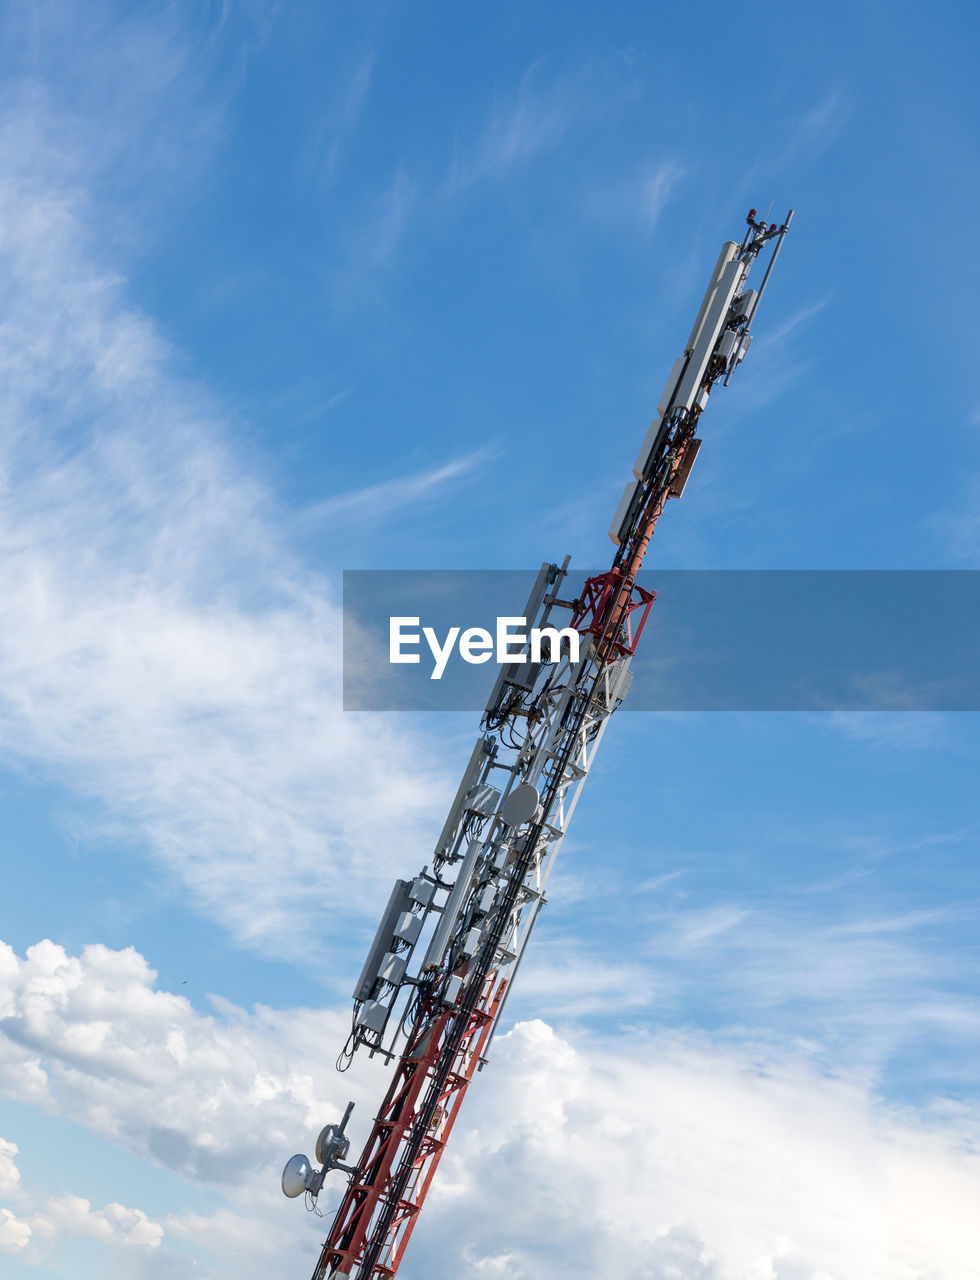 cloud - sky, sky, low angle view, crane - construction machinery, day, nature, machinery, no people, tall - high, industry, metal, outdoors, construction industry, blue, development, architecture, construction machinery, construction site, built structure, tower